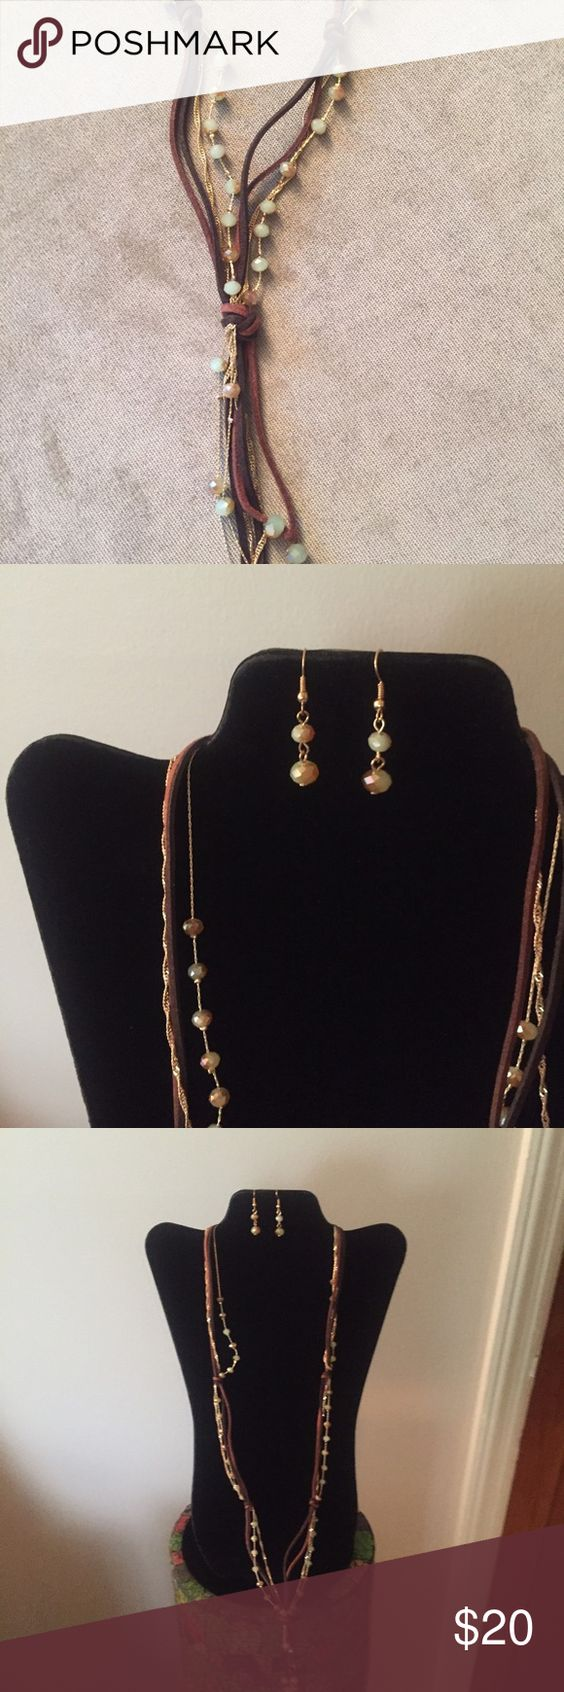 Necklace and Earring Set Multi-strands made of suede and gold plated with light Iridecent beads Jewelry Necklaces